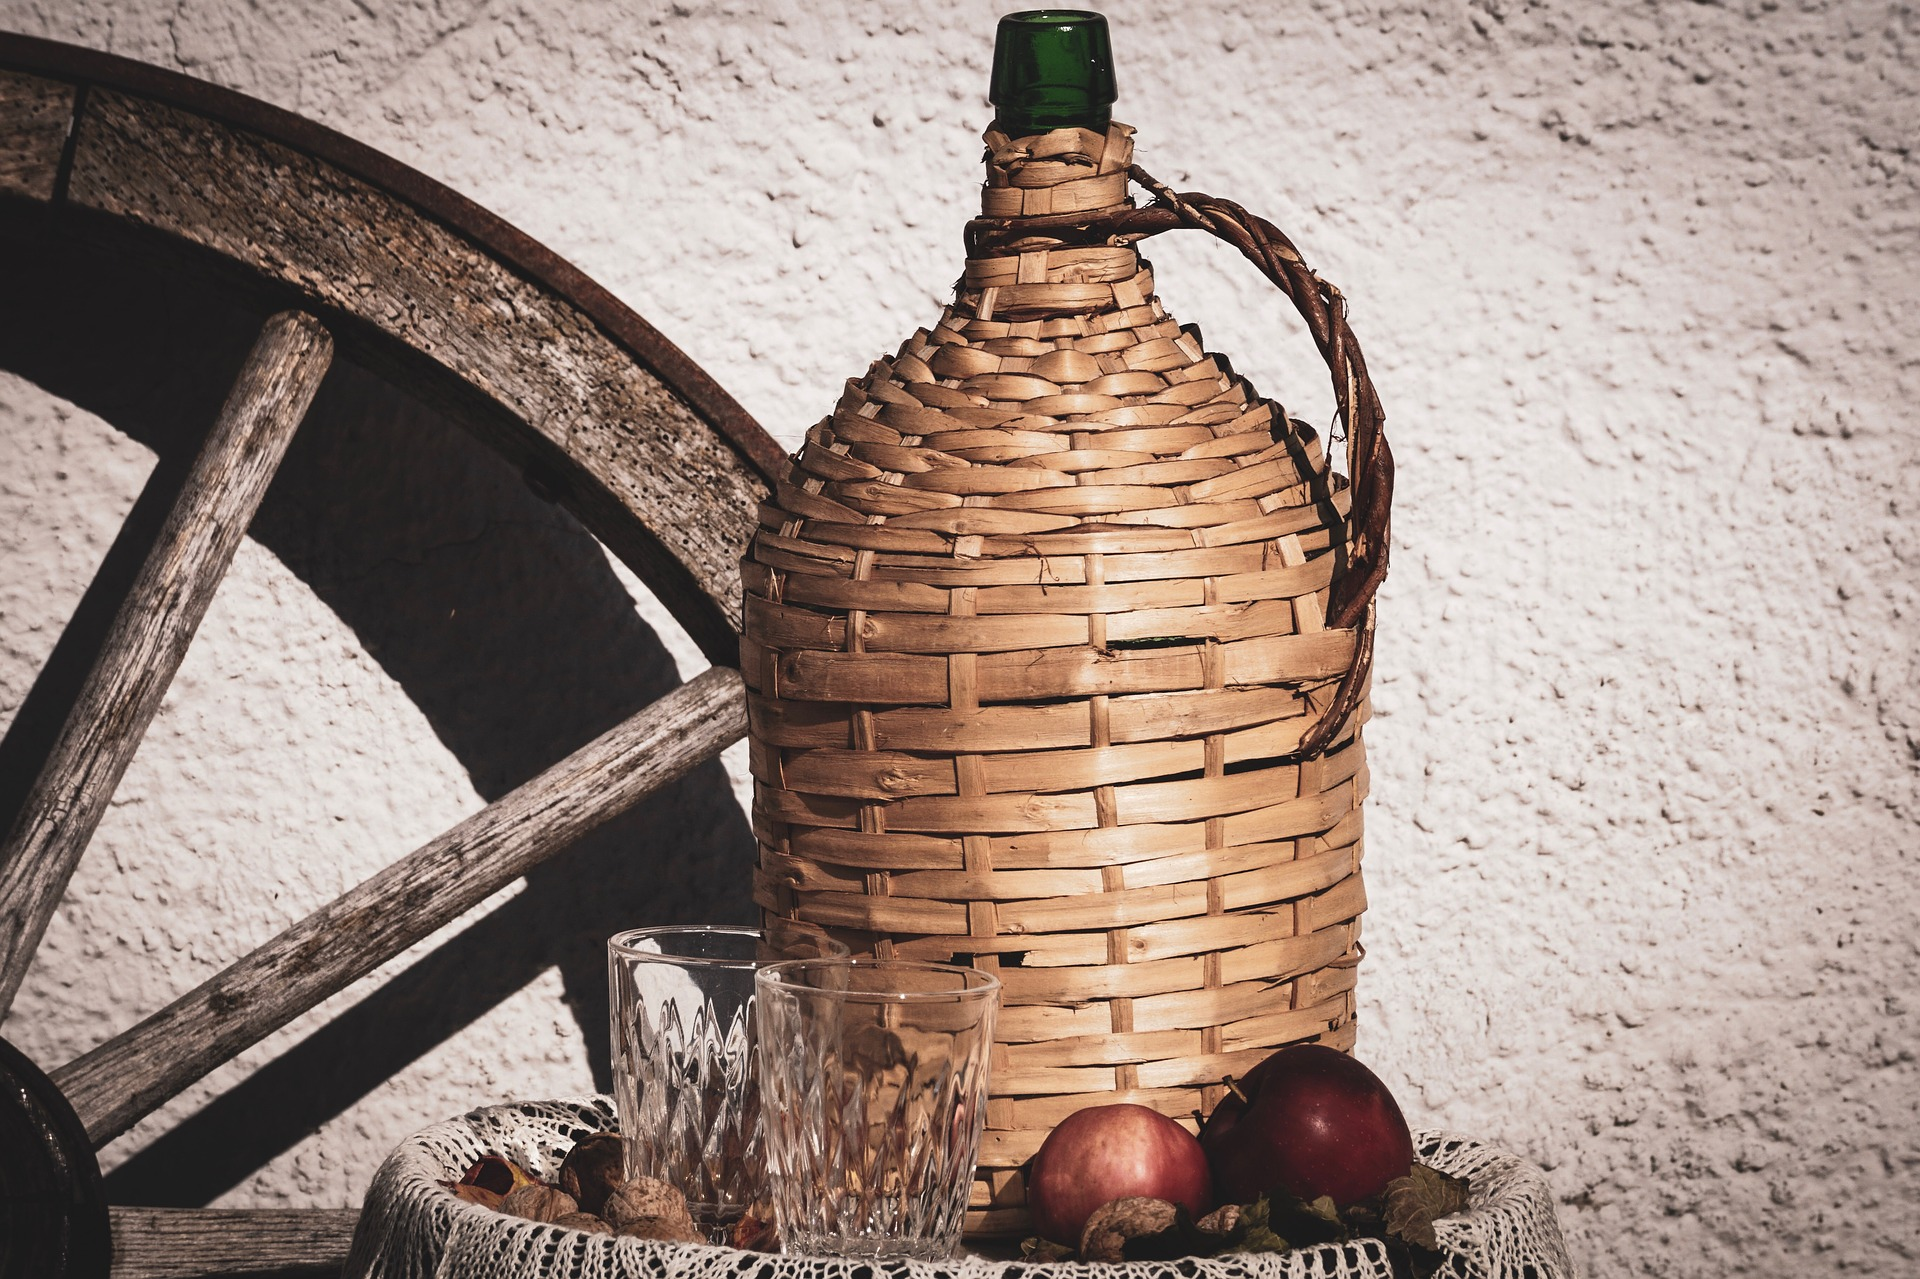 Wine bottle in woven container